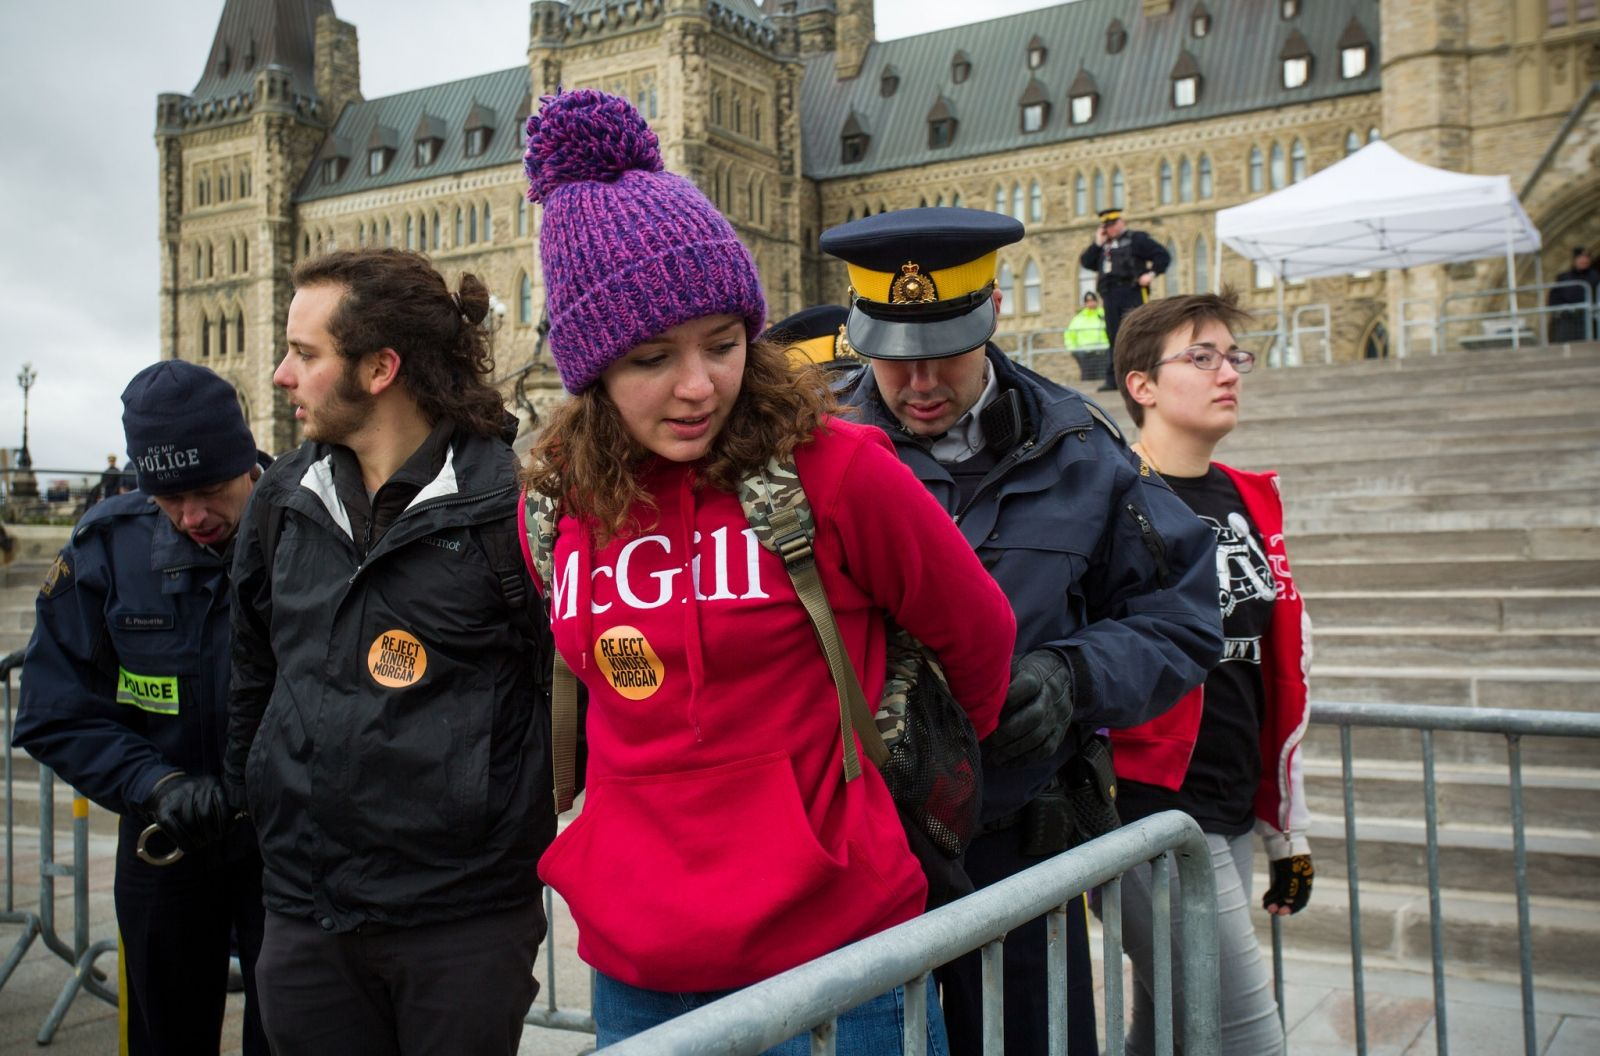 Opinion: Why are Canada's environmental groups going along with weak climate targets? | National Observer